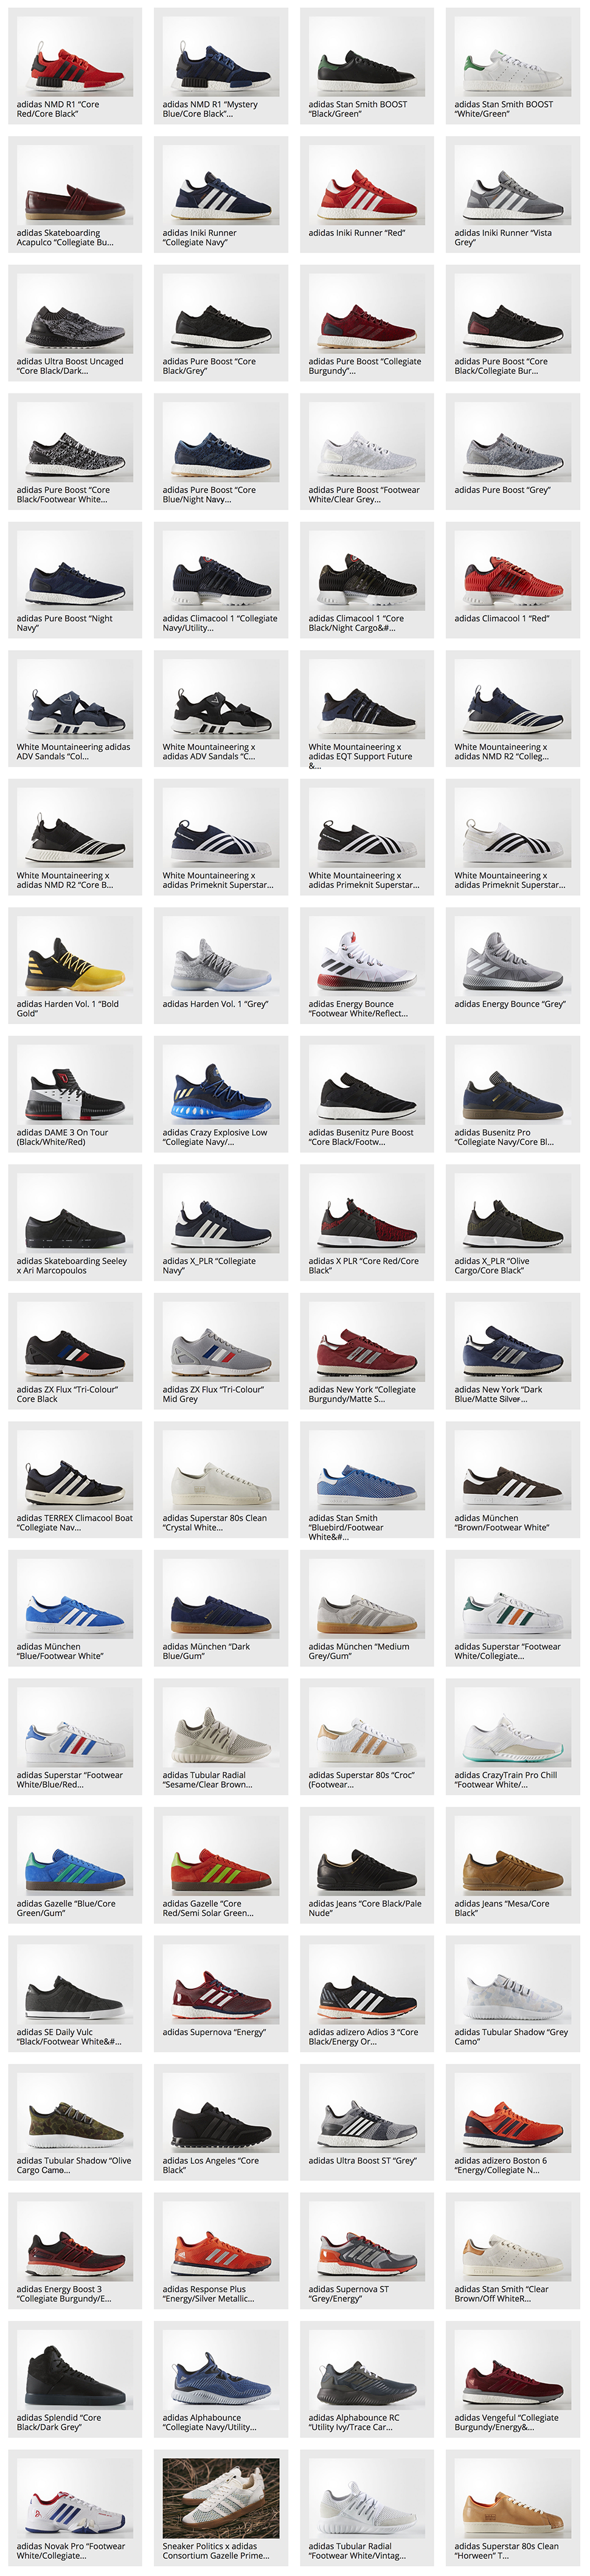 Adidas sneakers, Adidas shoes women